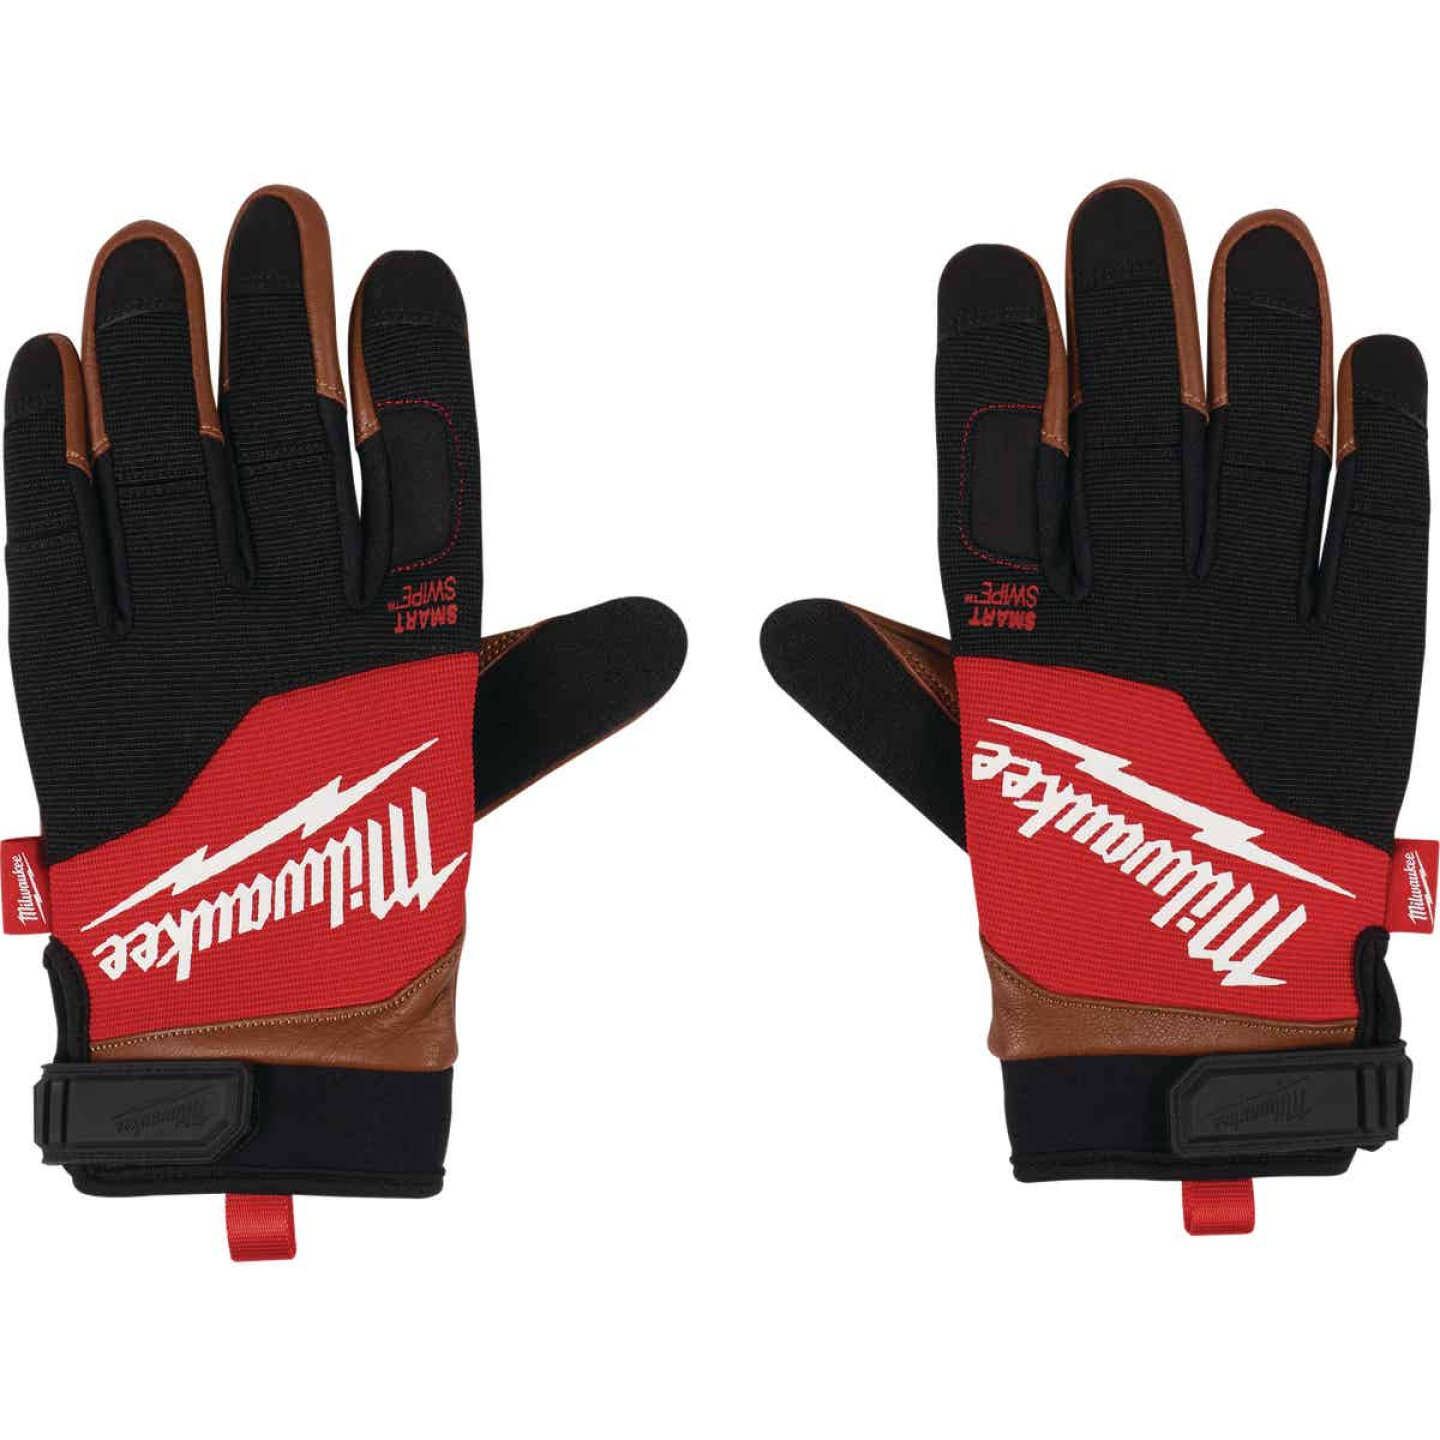 Milwaukee Men's Large Leather Performance Work Glove Image 4